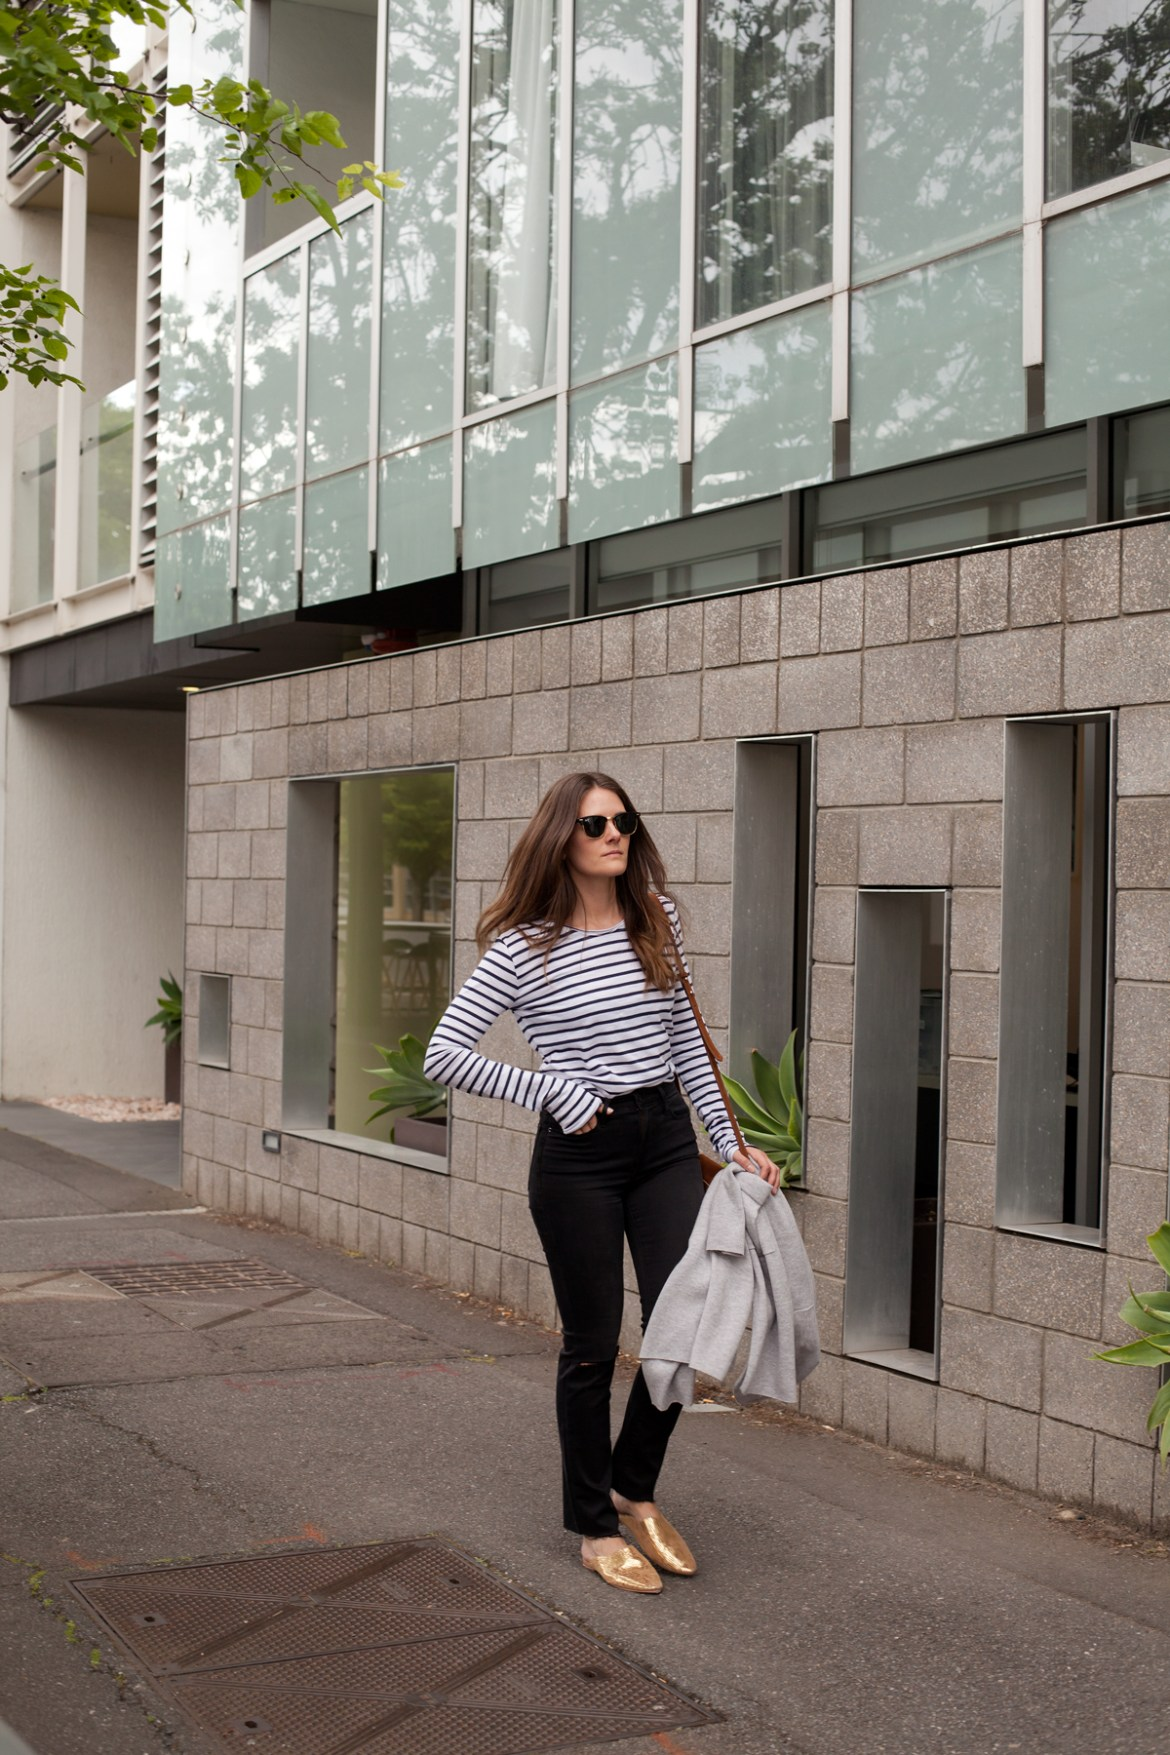 Sassind gold leather babouche slides, grey longline merino cardigan, striped tee, Frame denim jeans worn by Inspiring Wit fashion blogger Jenelle